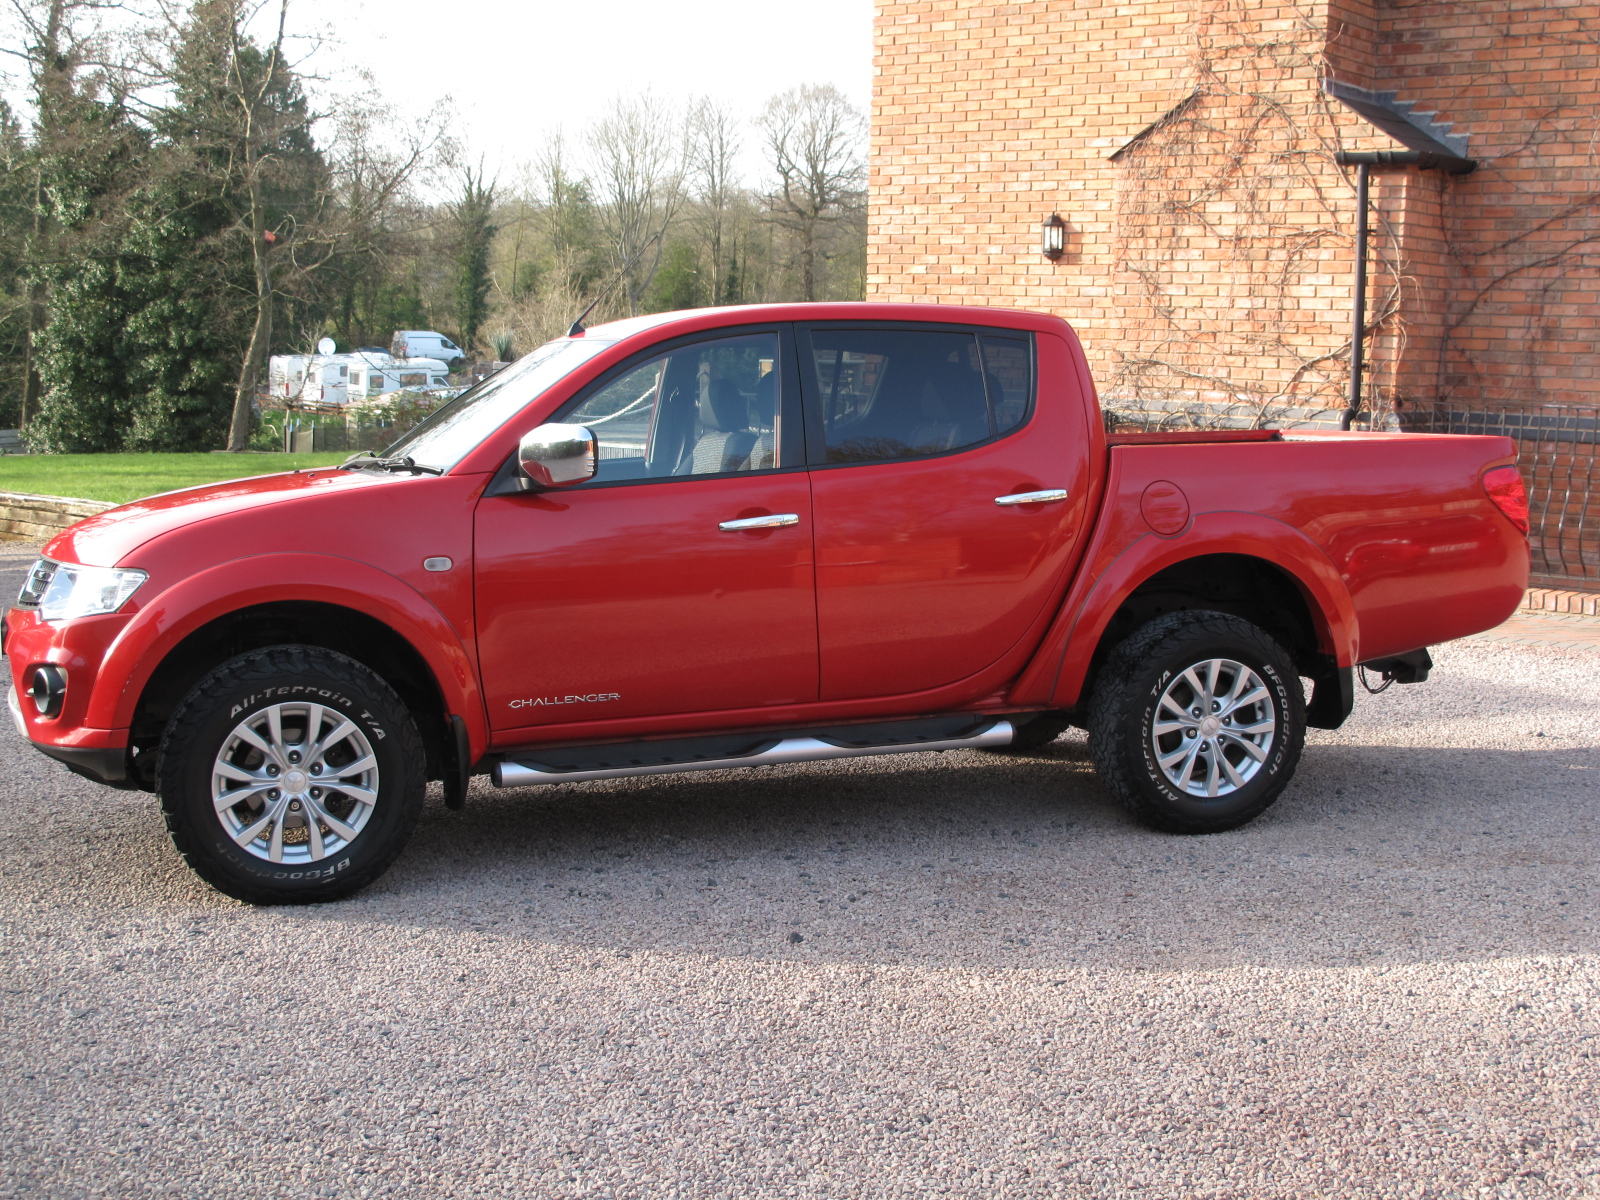 2015 15 Mitsubishi L200 2.5 DI-D CR Challenger Double Cab Pickup 4WD STUNNING TRUCK THROUGHOUT! ONLY 1 OWNER! NO VAT! full